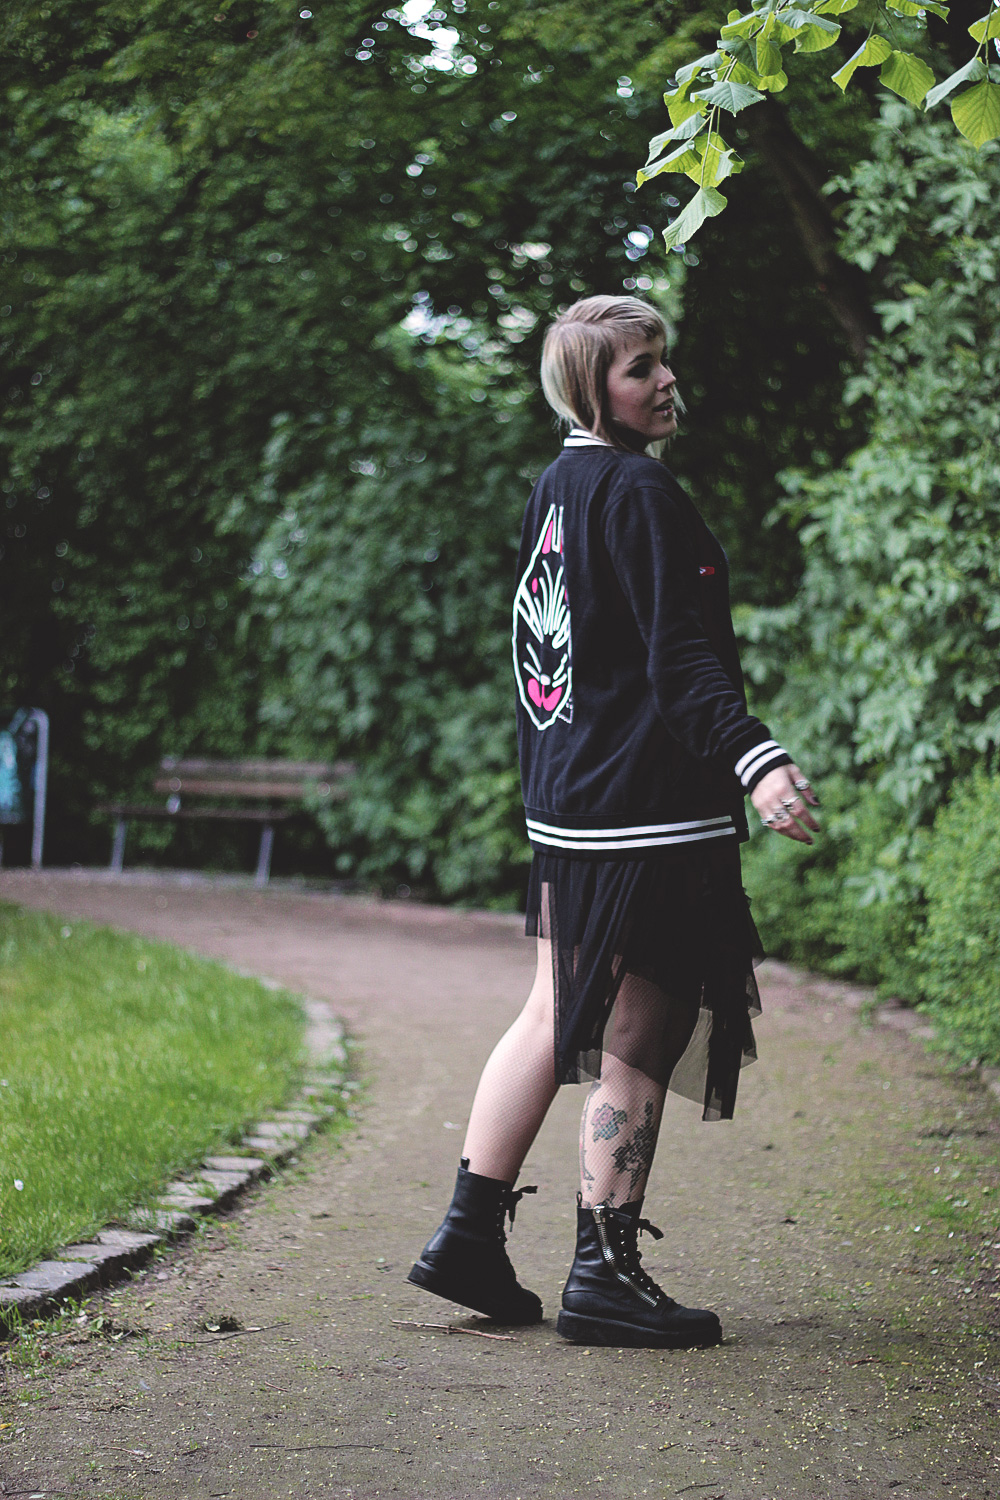 fuchs, japan, japanische Kultur, kitsune, alxndra, Alexandra cook, Touche amore, bandshirt, bandmerch, rock, tüllrock, h&m, trench boot, unit, boots, Strumpfhose, Fischnetz, nude, collegejacke, alternative, alternative fashion, alternative girl, alternative mode, altgirl, berlin, berlin fashion, berlin fashion blogger, berlin mode, berlin streetstyle, blogger, fashion blogger, girls with piercings, girls with tattoos, grunge, grunge fashion, grunge mode, mode, Punk, punk fashion, punk mode, punkgirl, punkmädchen, scenehair, snakebites, split hair, splithair, tattoomädchen, tattoomodel